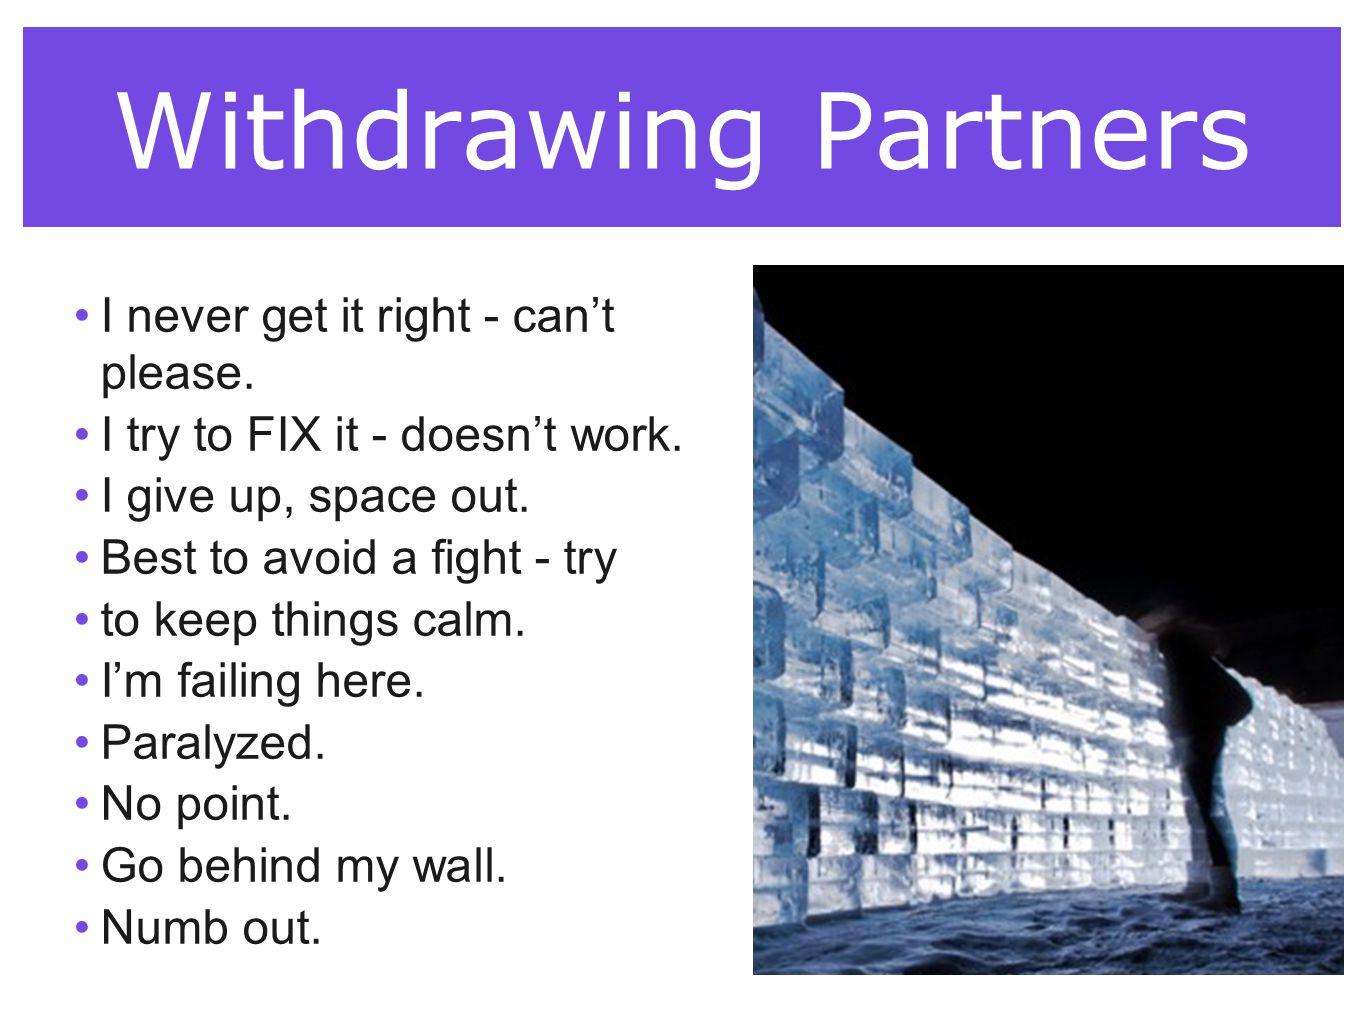 Withdrawing Partners I never get it right - can't please. I try to FIX it - doesn't work. I give up, space out. Best to avoid a fight - try to keep th